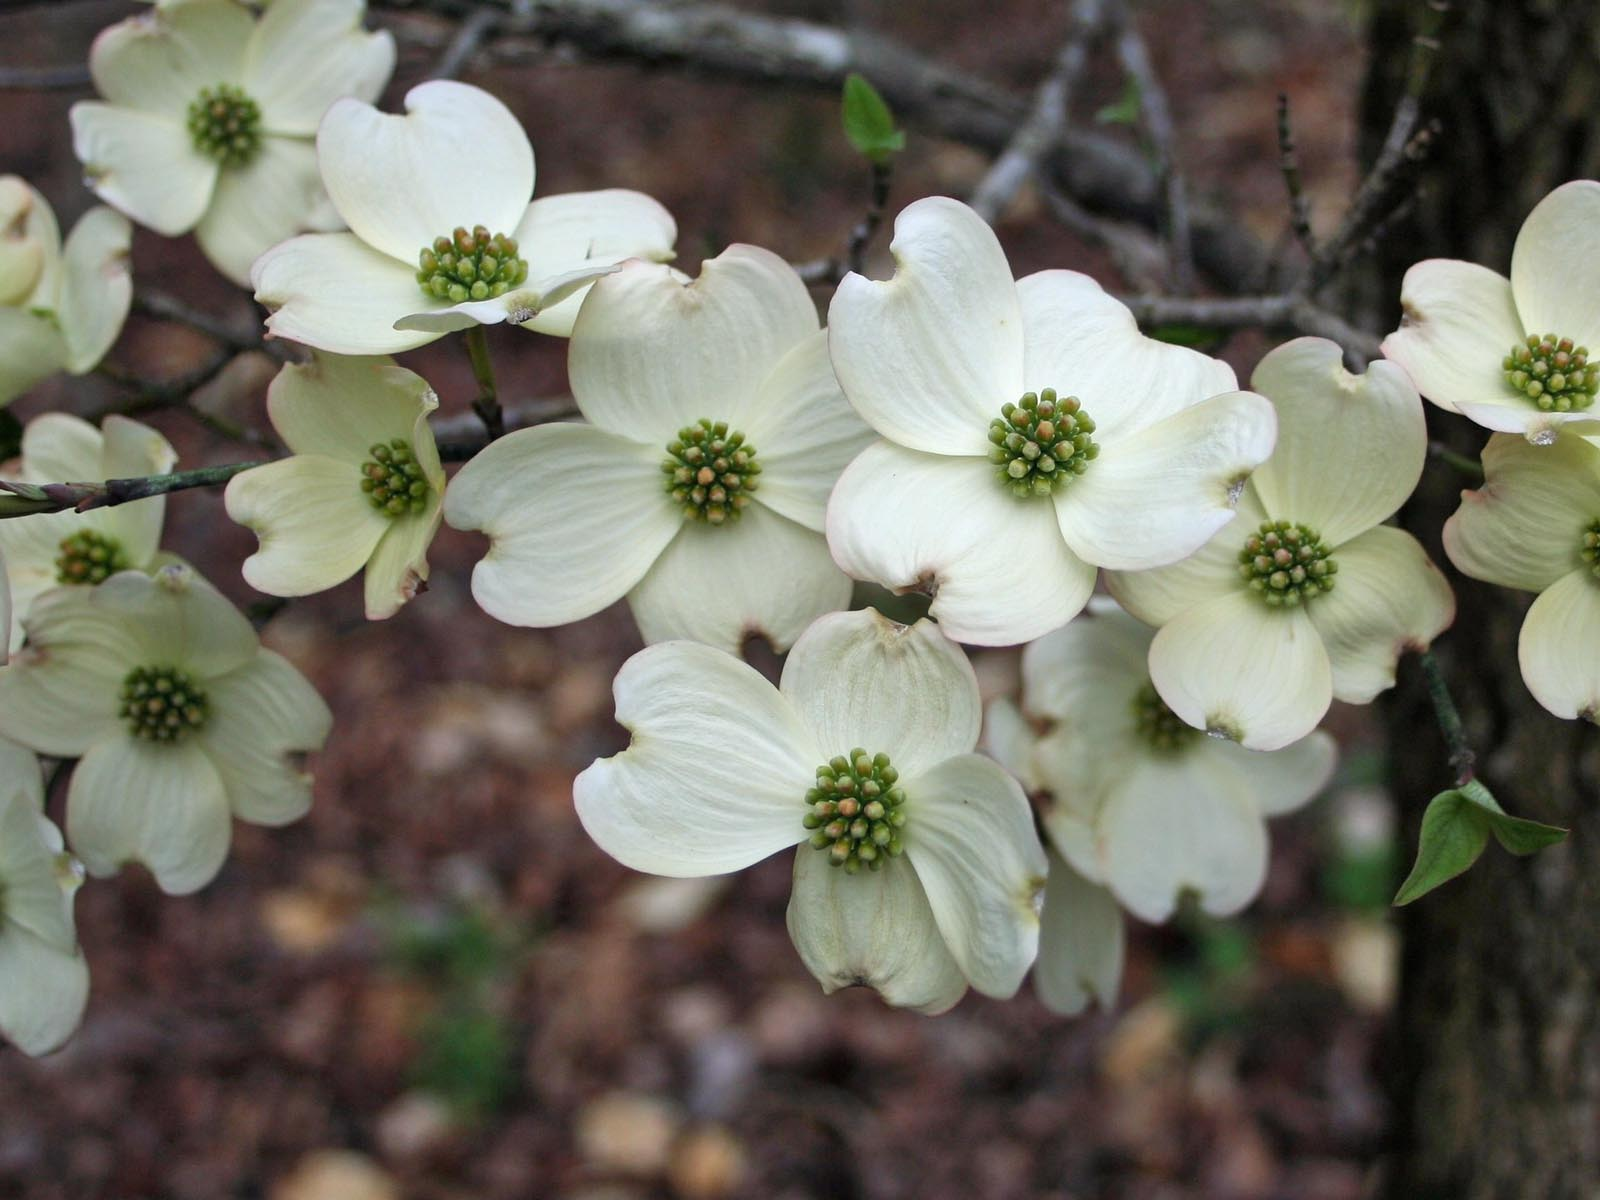 Dogwood | Photo Credit: James DeMers